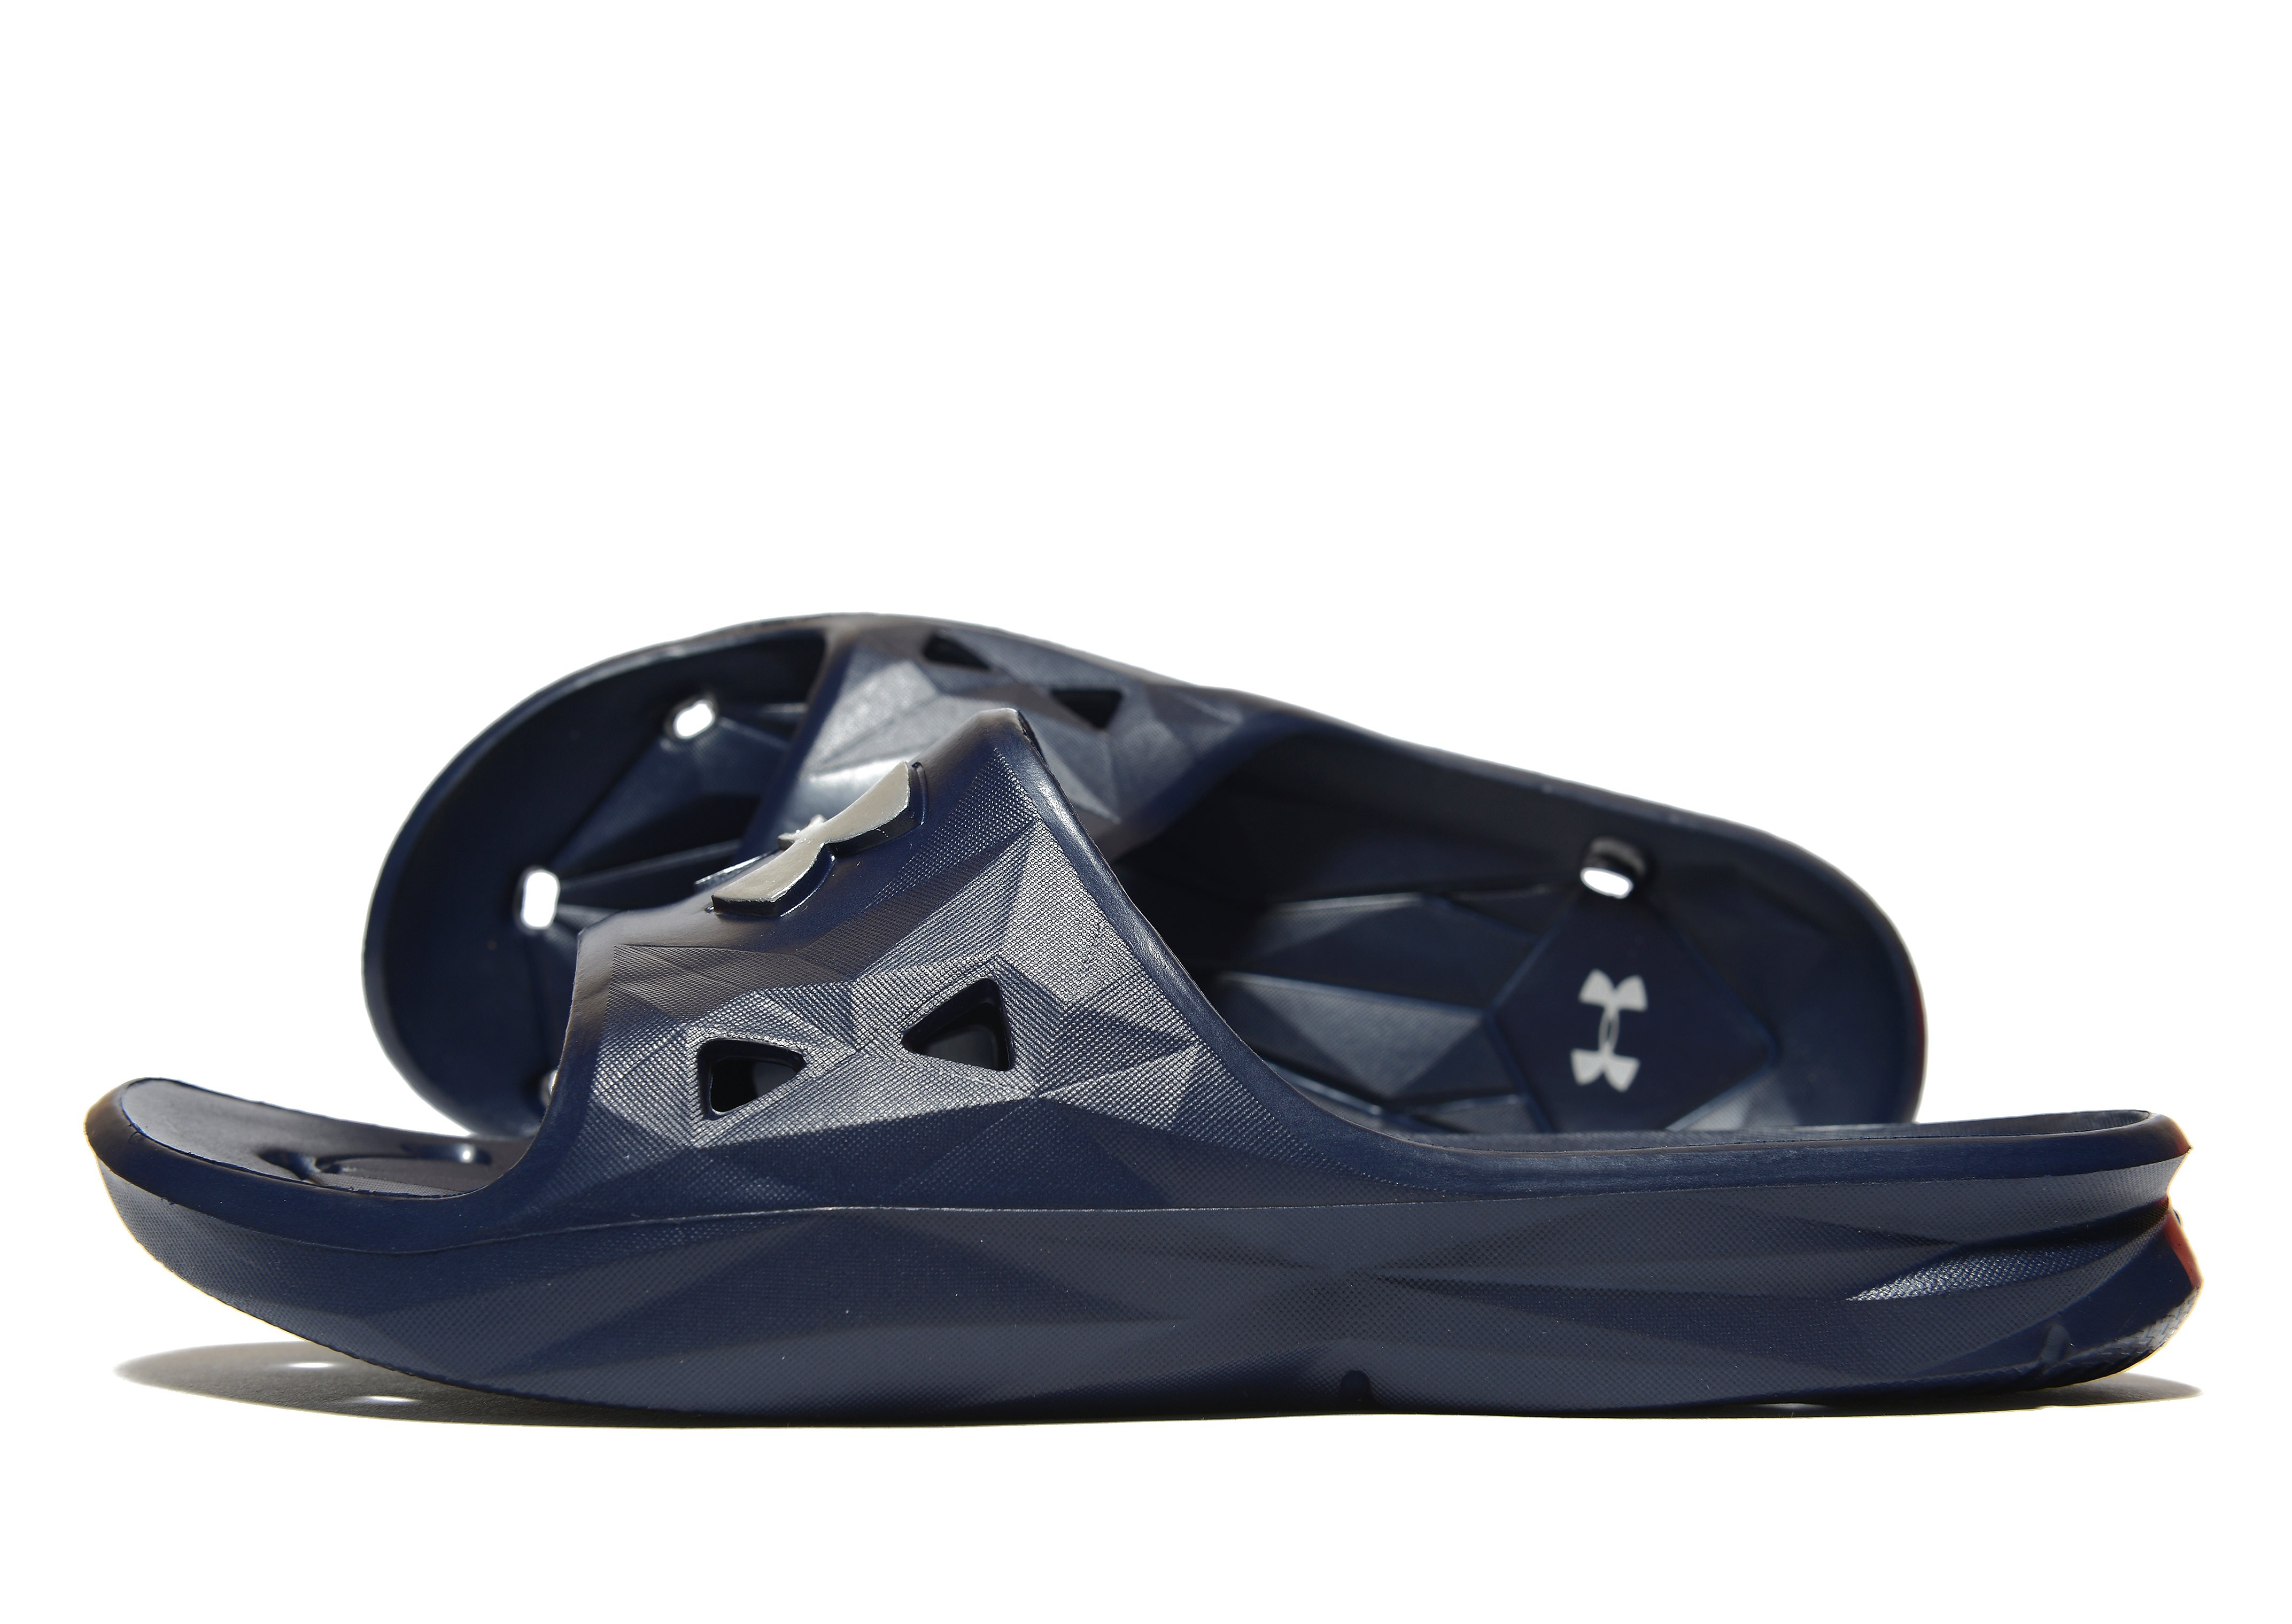 Under Armour Locker III Slides